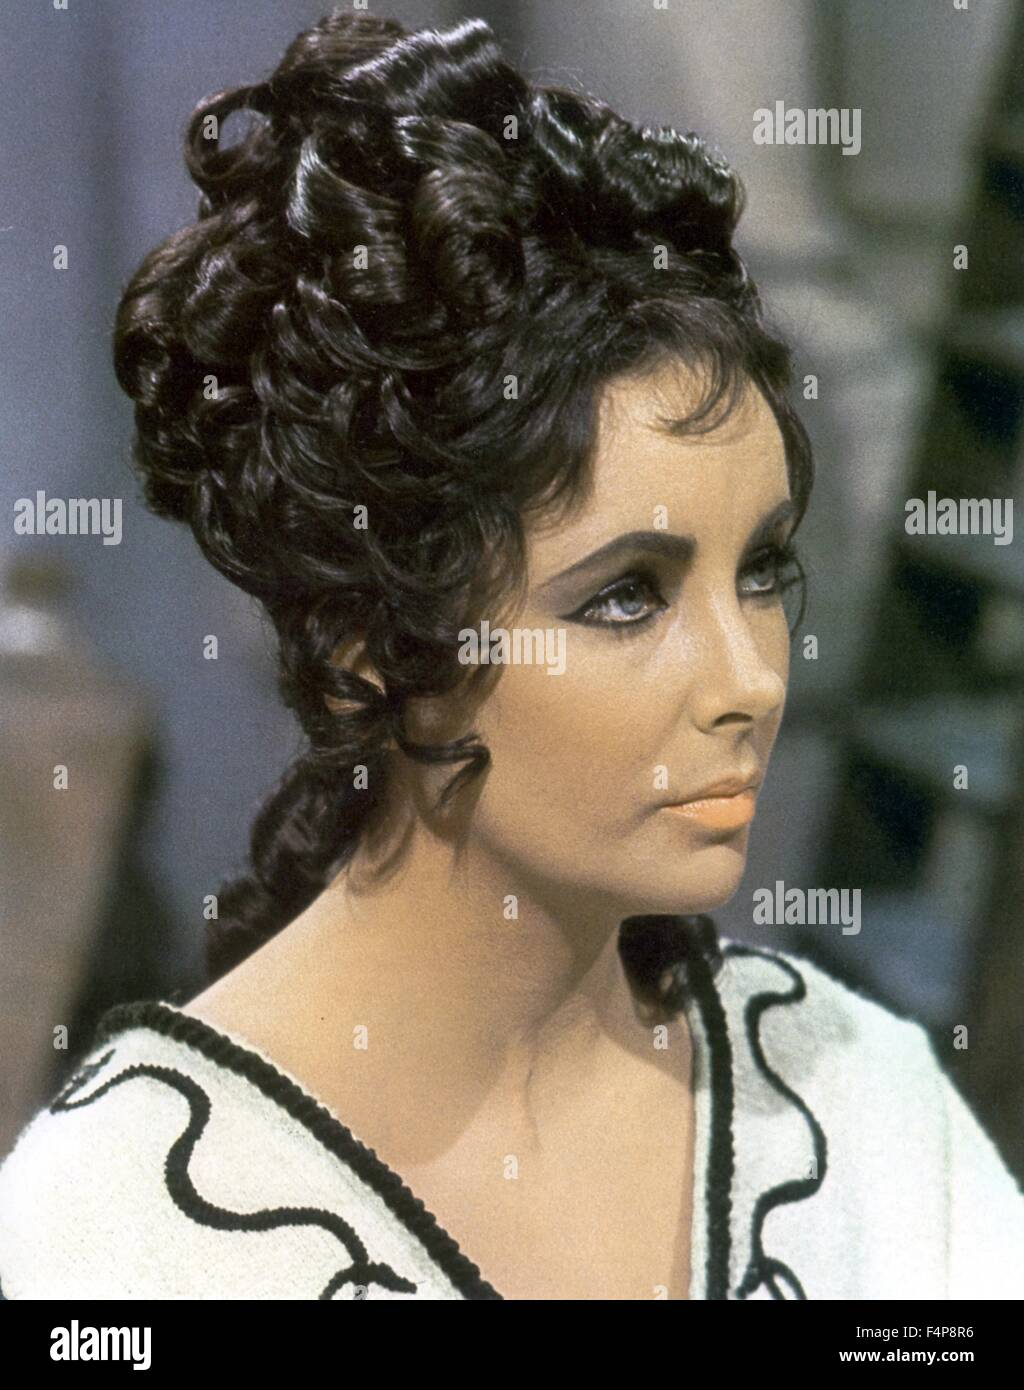 Elizabeth Taylor / Boom 1968 directed by Joseph Losey - Stock Image